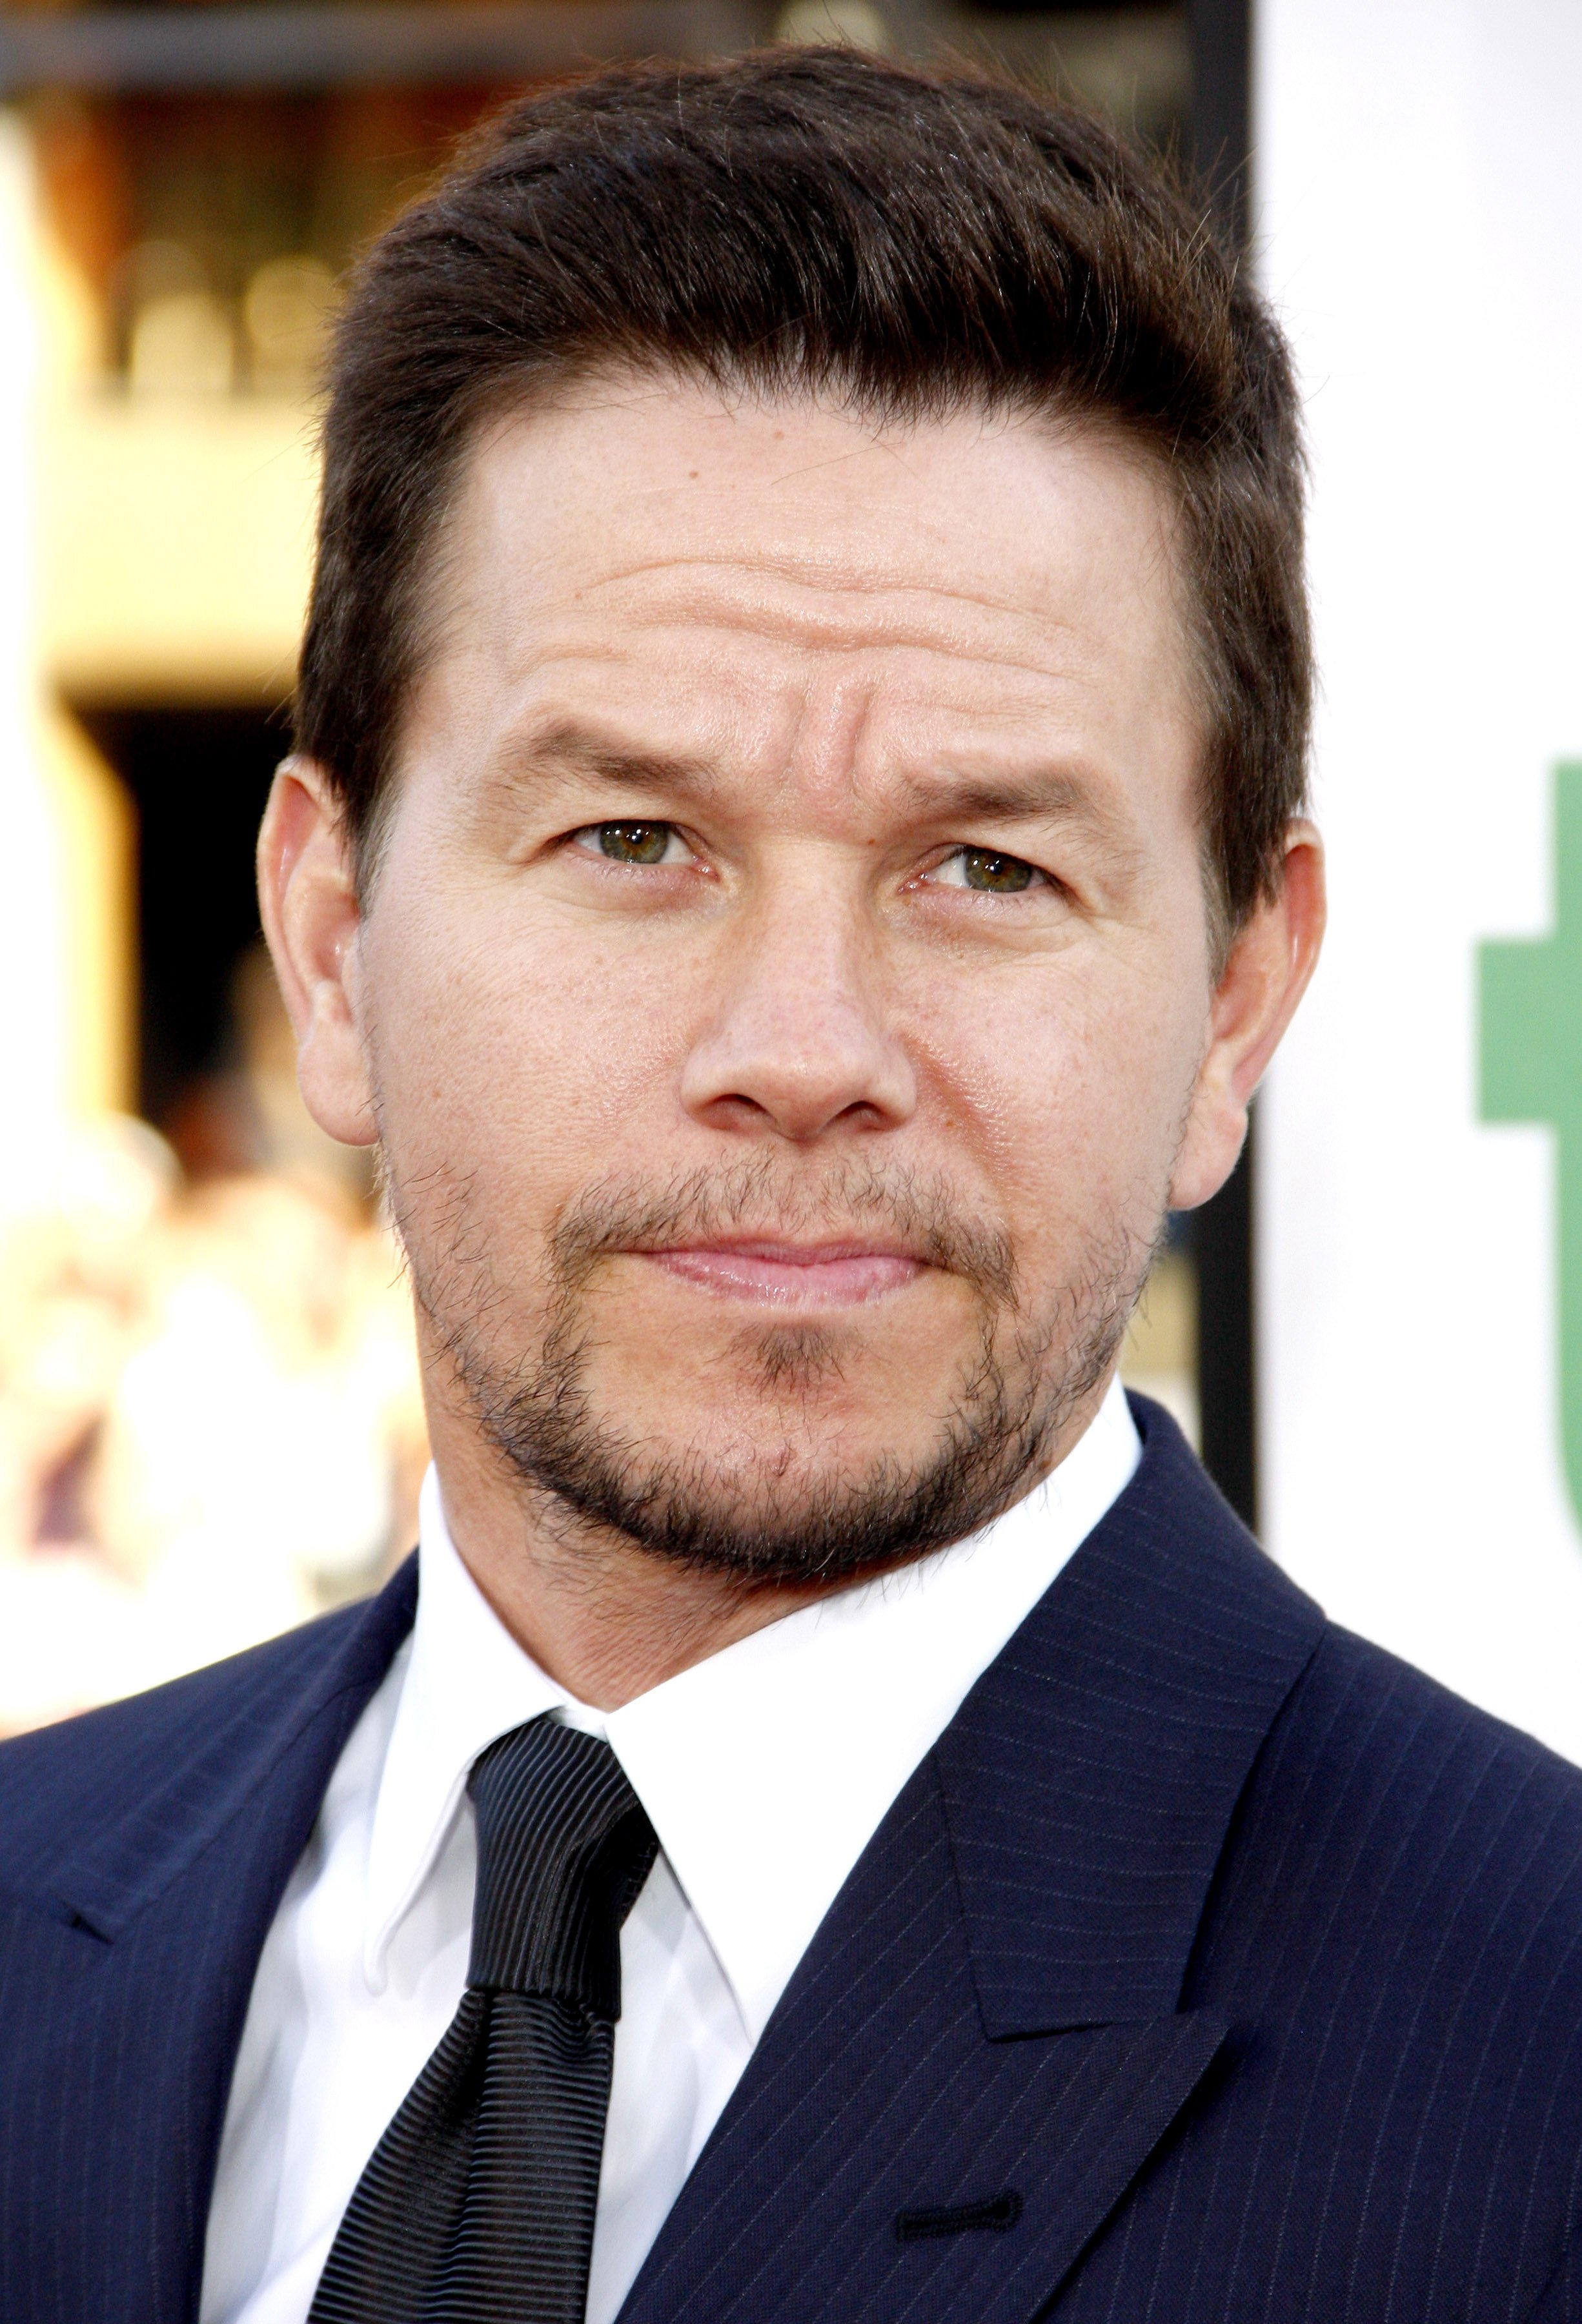 """Mark Wahlberg at the movie premiere of """"Ted"""" on June 21, 2012 in Los Angeles, California, 